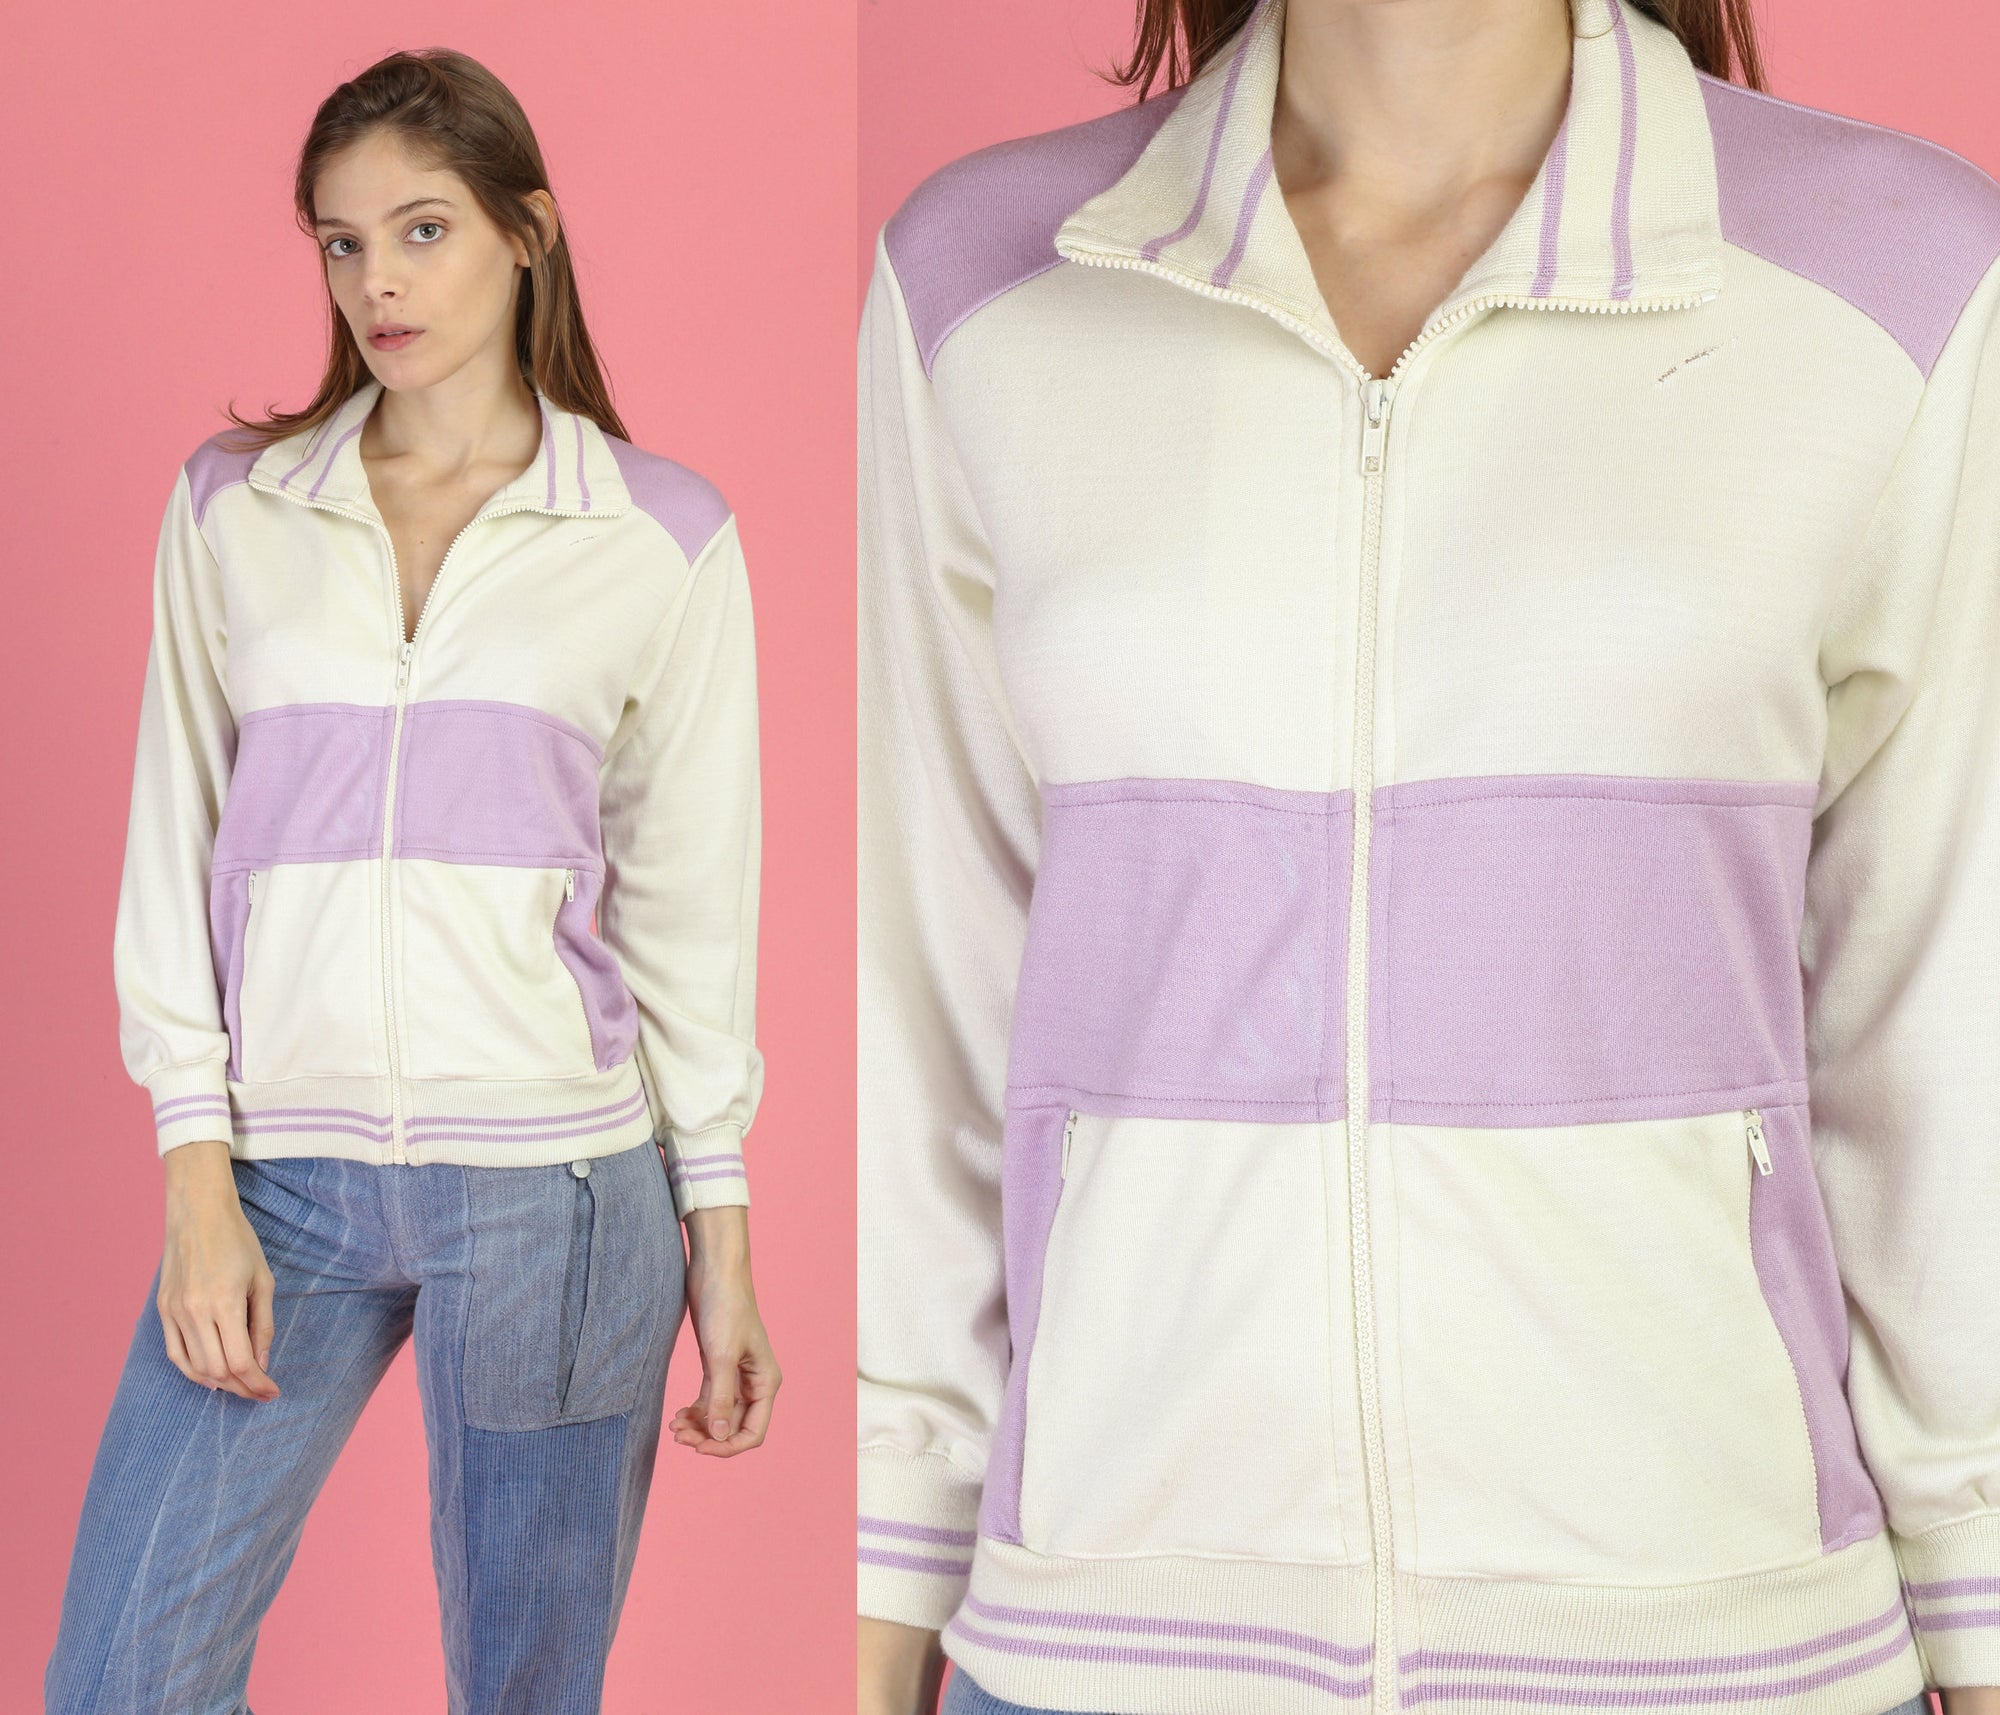 80s Jog Joy Zip Up Track Jacket - Small